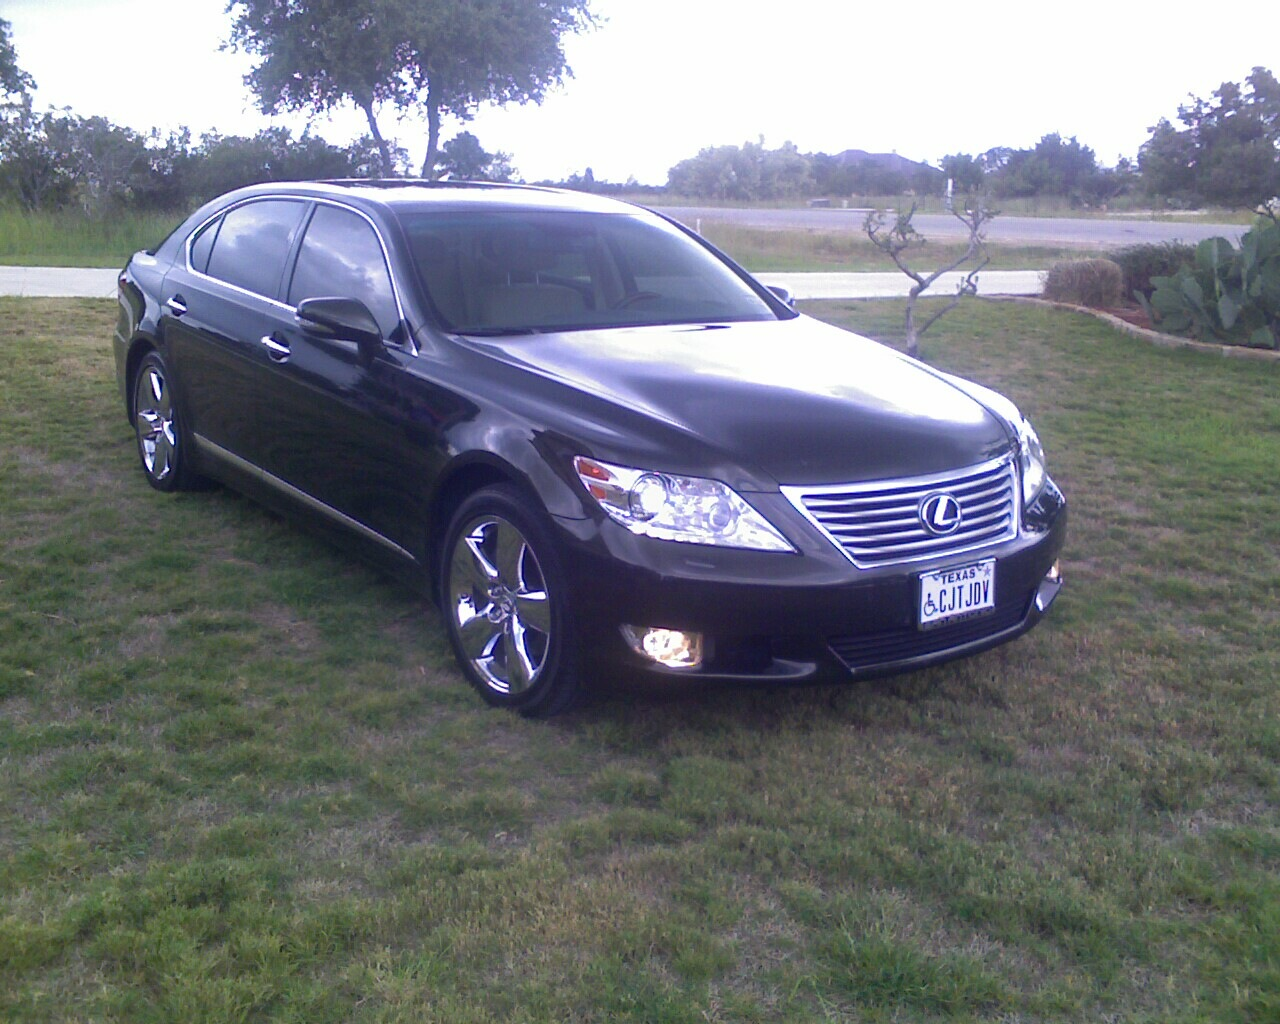 2010 lexus ls 460 pictures cargurus. Black Bedroom Furniture Sets. Home Design Ideas